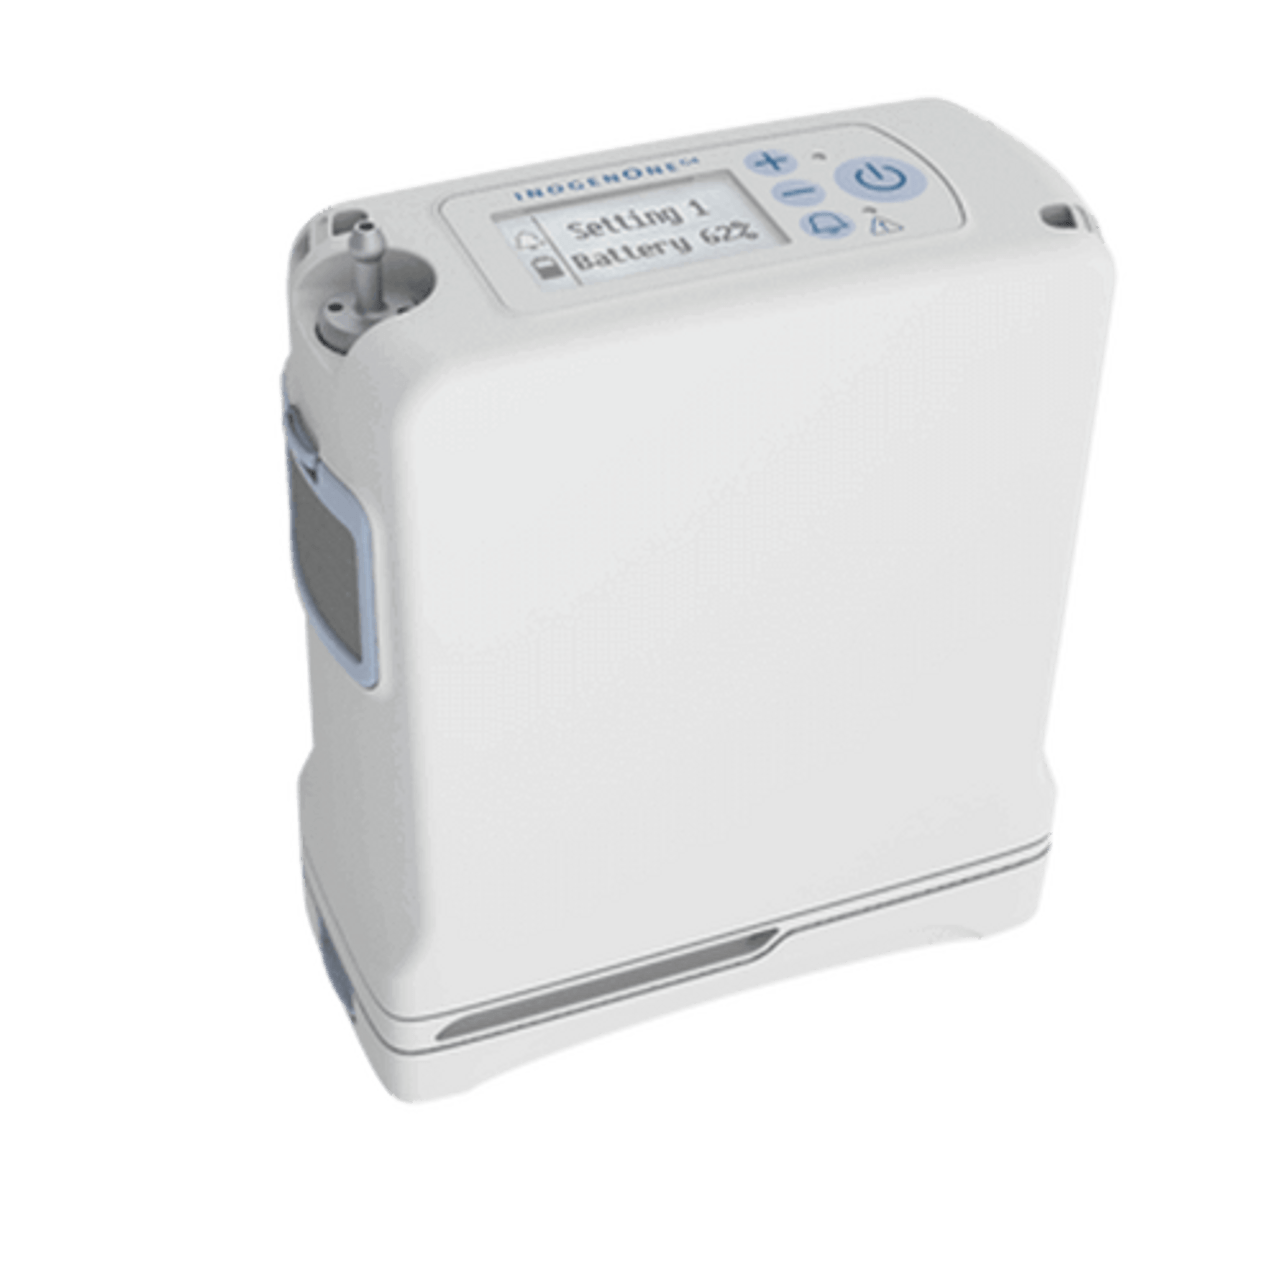 Inogen One G4 Portable Oxygen Concentrator with 4-cell Single Battery